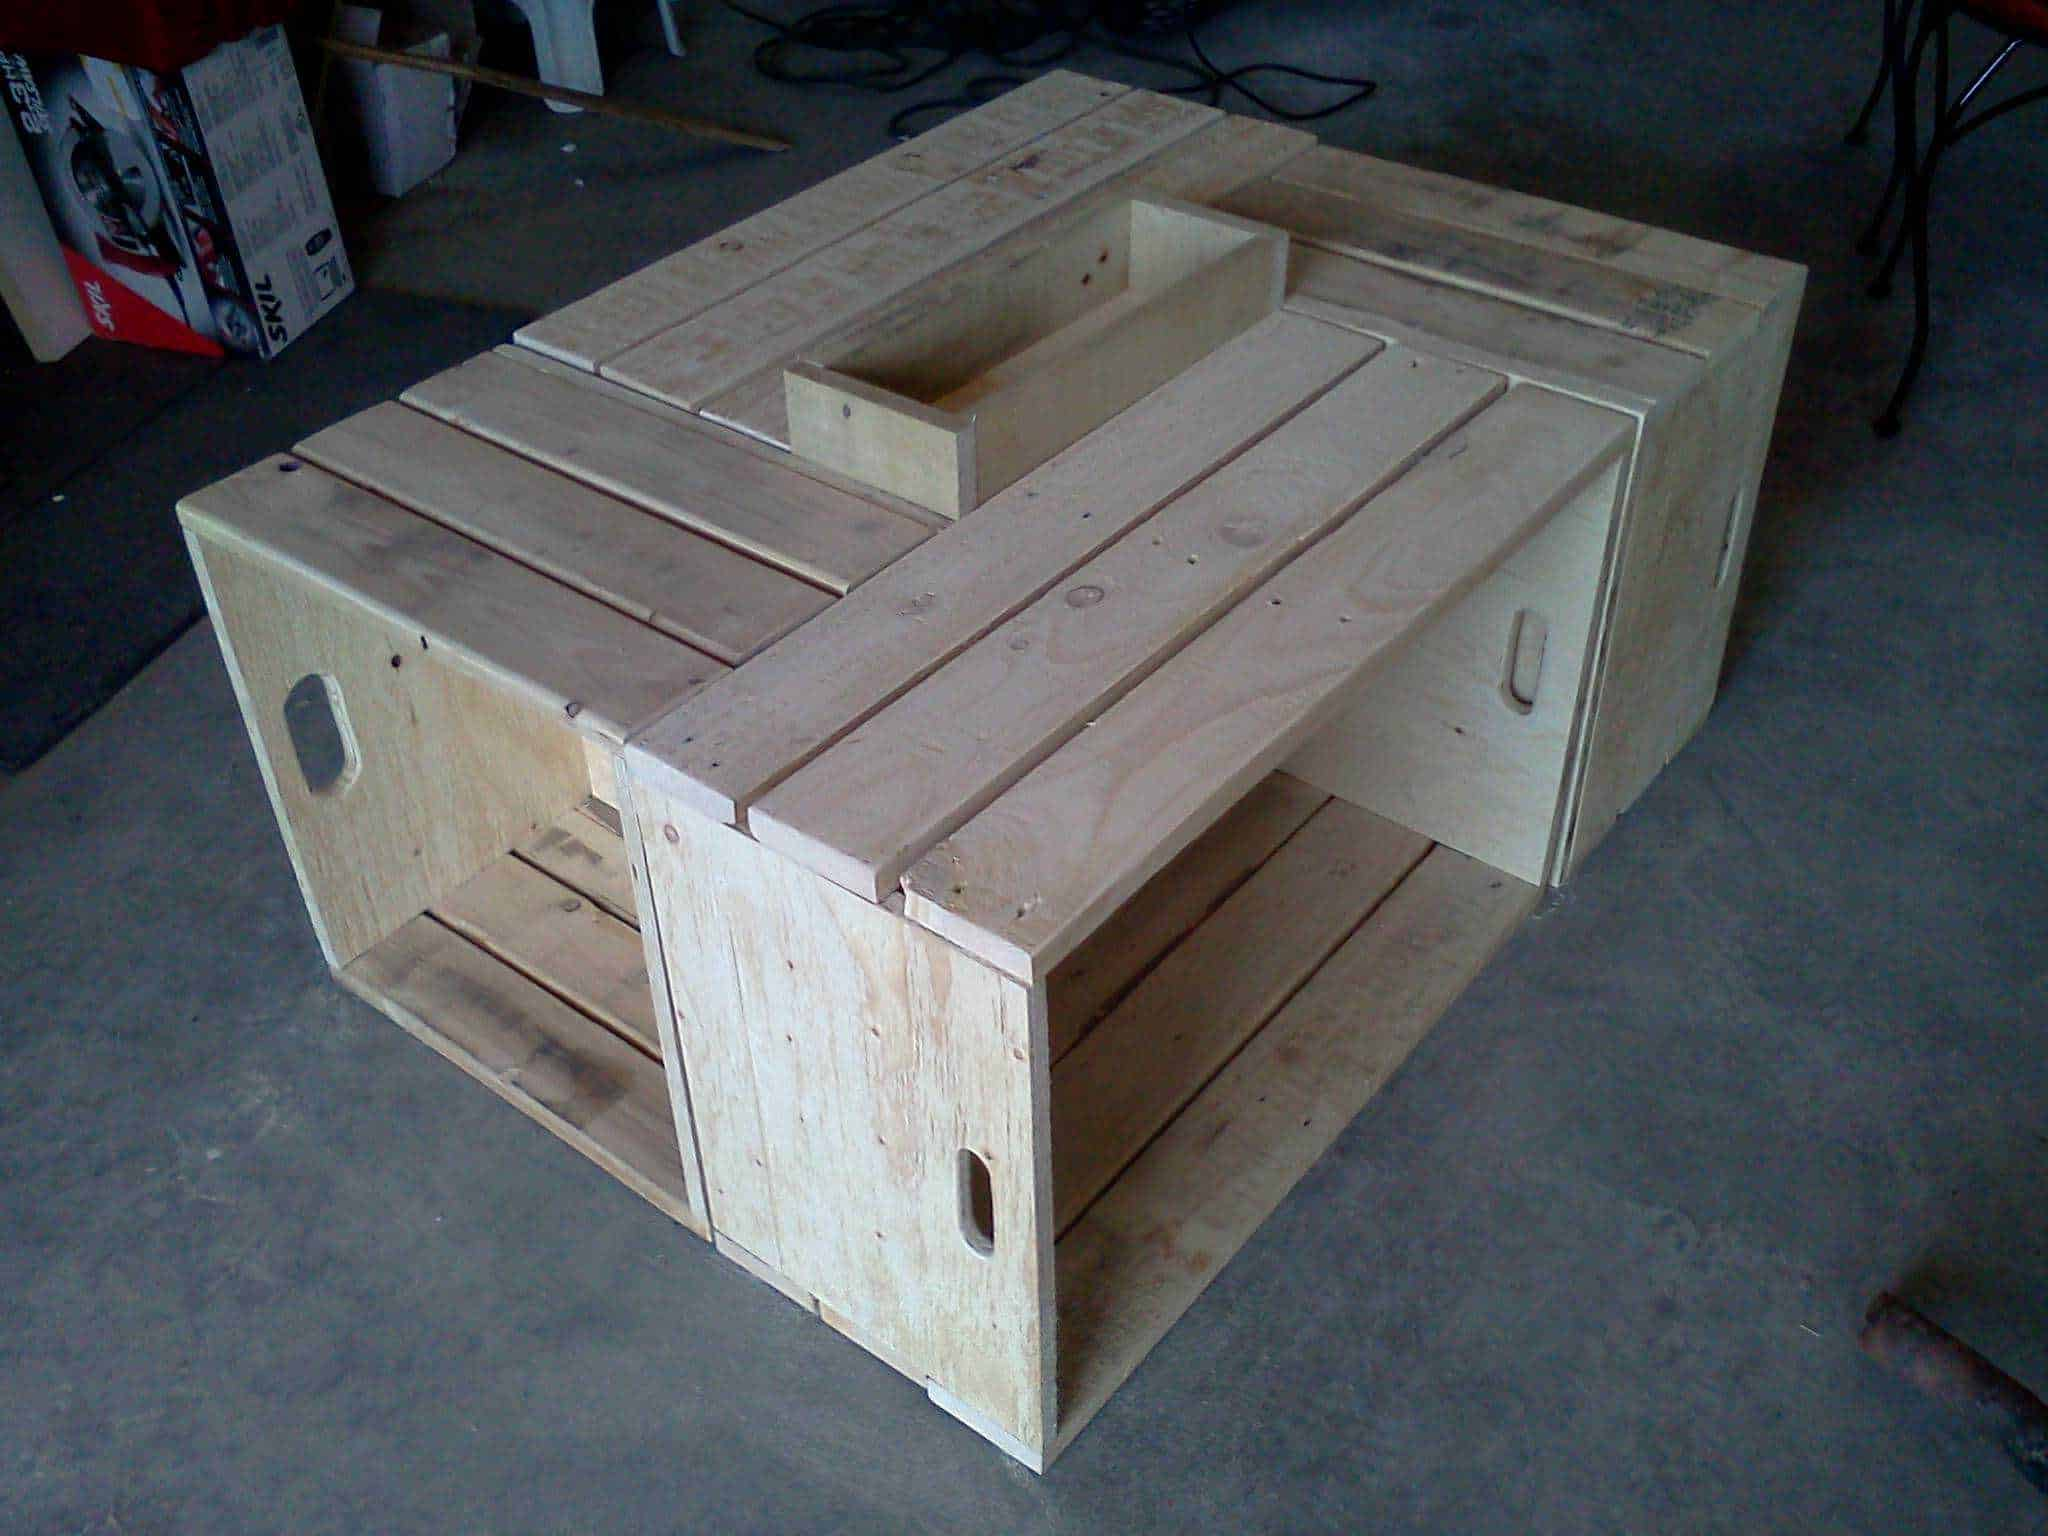 Table Salon En Bois > Table Basse Pour Le Salon En Bois De Palettes Recycled Pallet Wood Coffee Table u2022 1001 Pallets